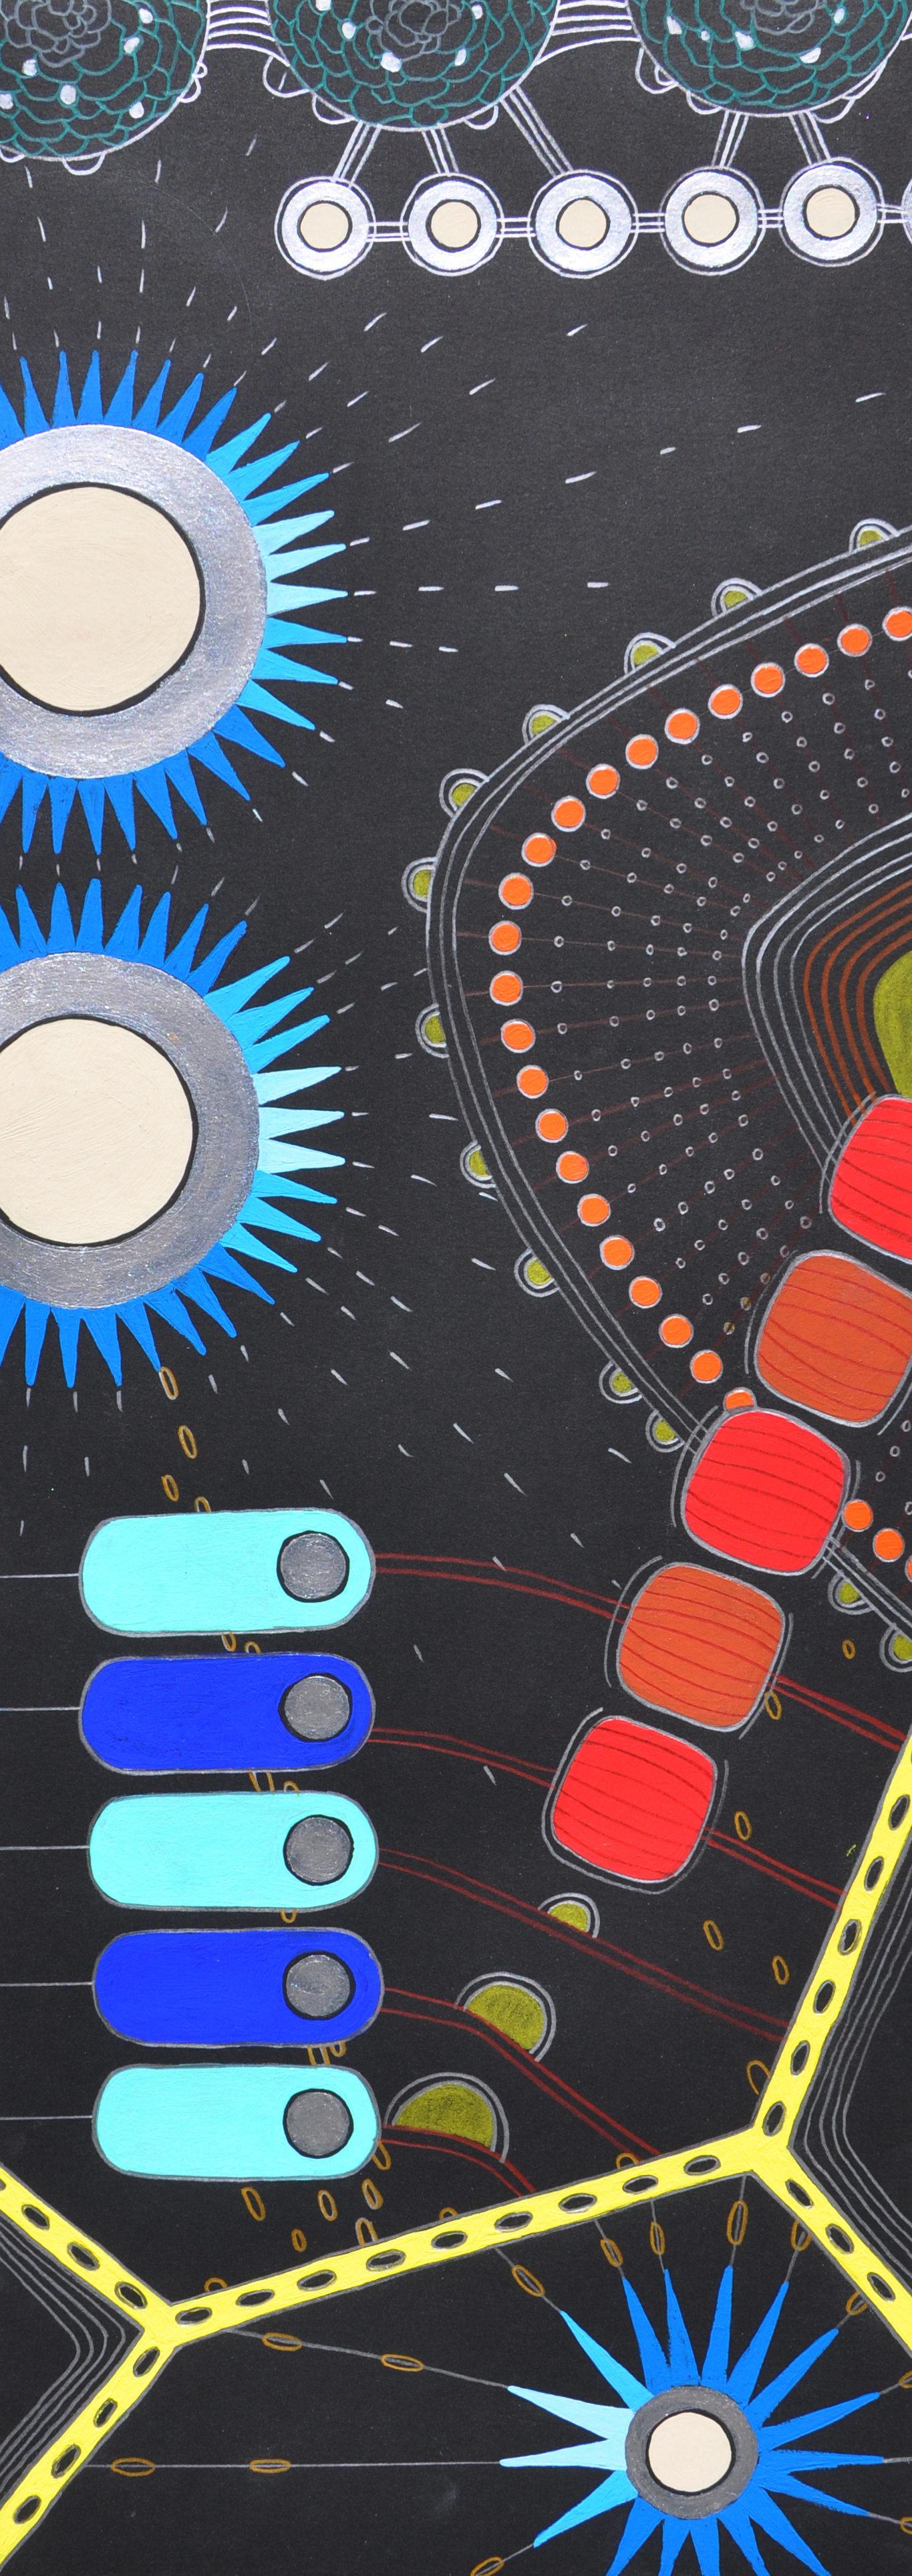 """Extra Life  22"""" x 8"""" (unframed) gouache and colored pencil on paper, 2013"""